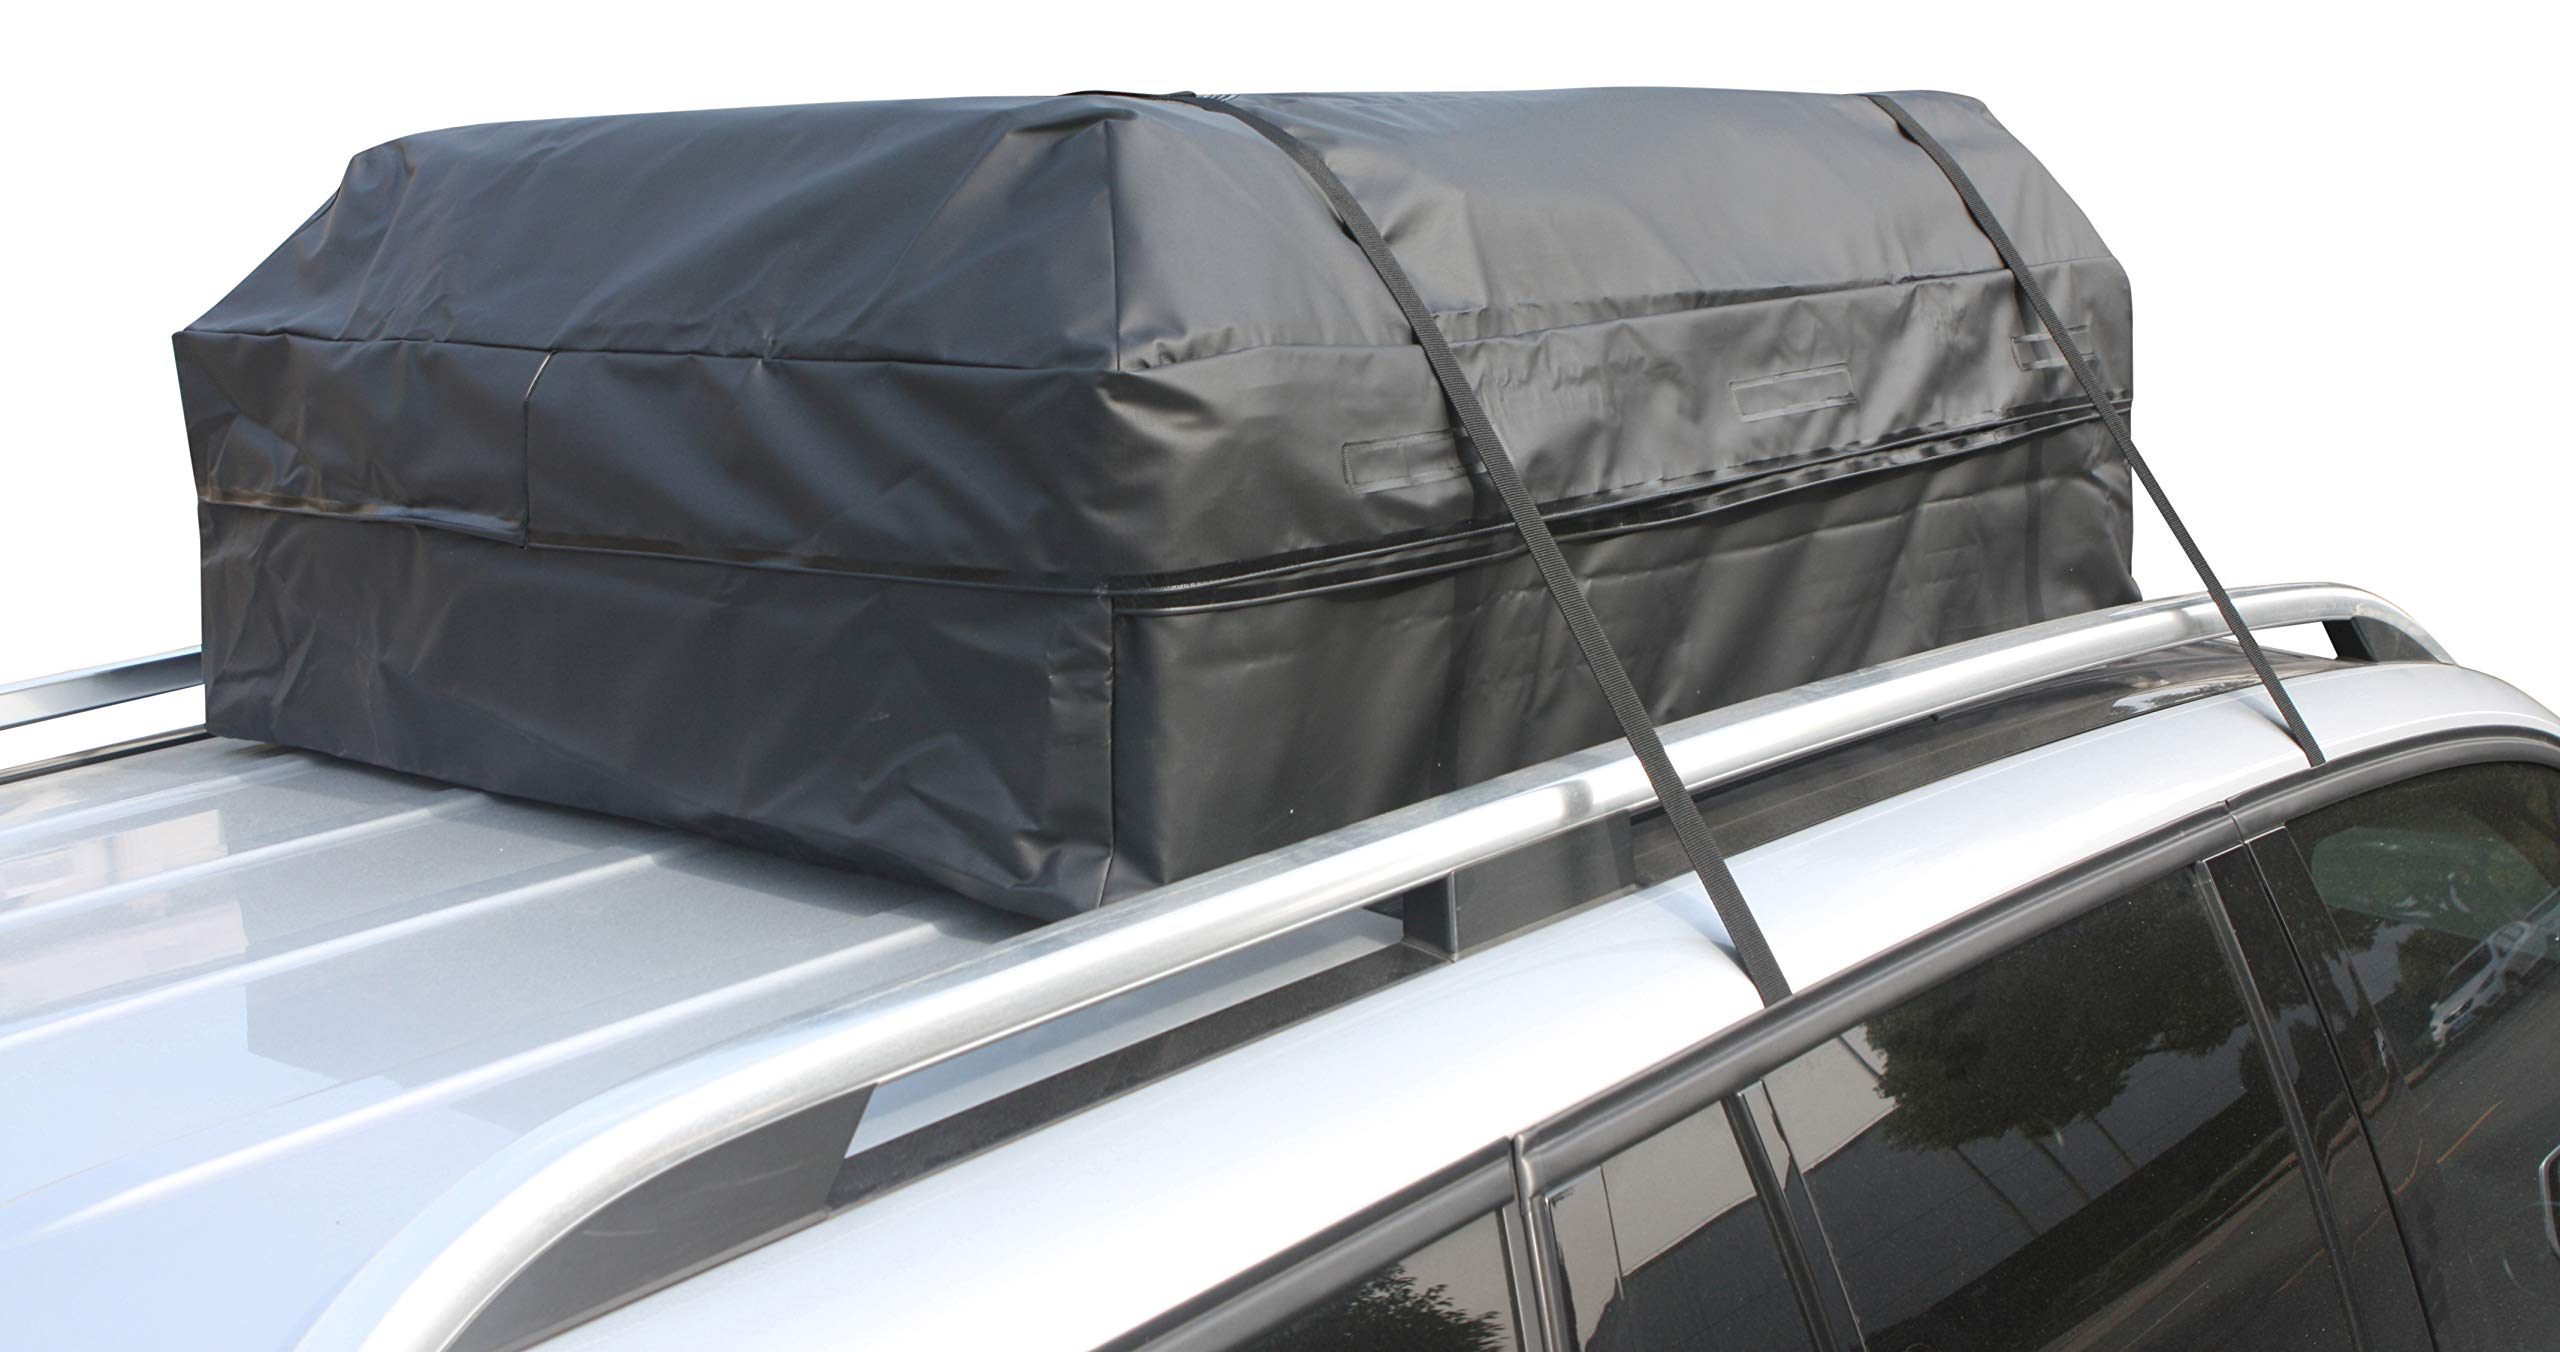 Perfection Updated Car Roof Bag Luggage Carrier Cargo Storage Roofbag for Cars w/o Racks, Attached Non-Slip Mat, Extra Rooftop Padding, Enhanced Safety Buckle by Perfection (Image #8)